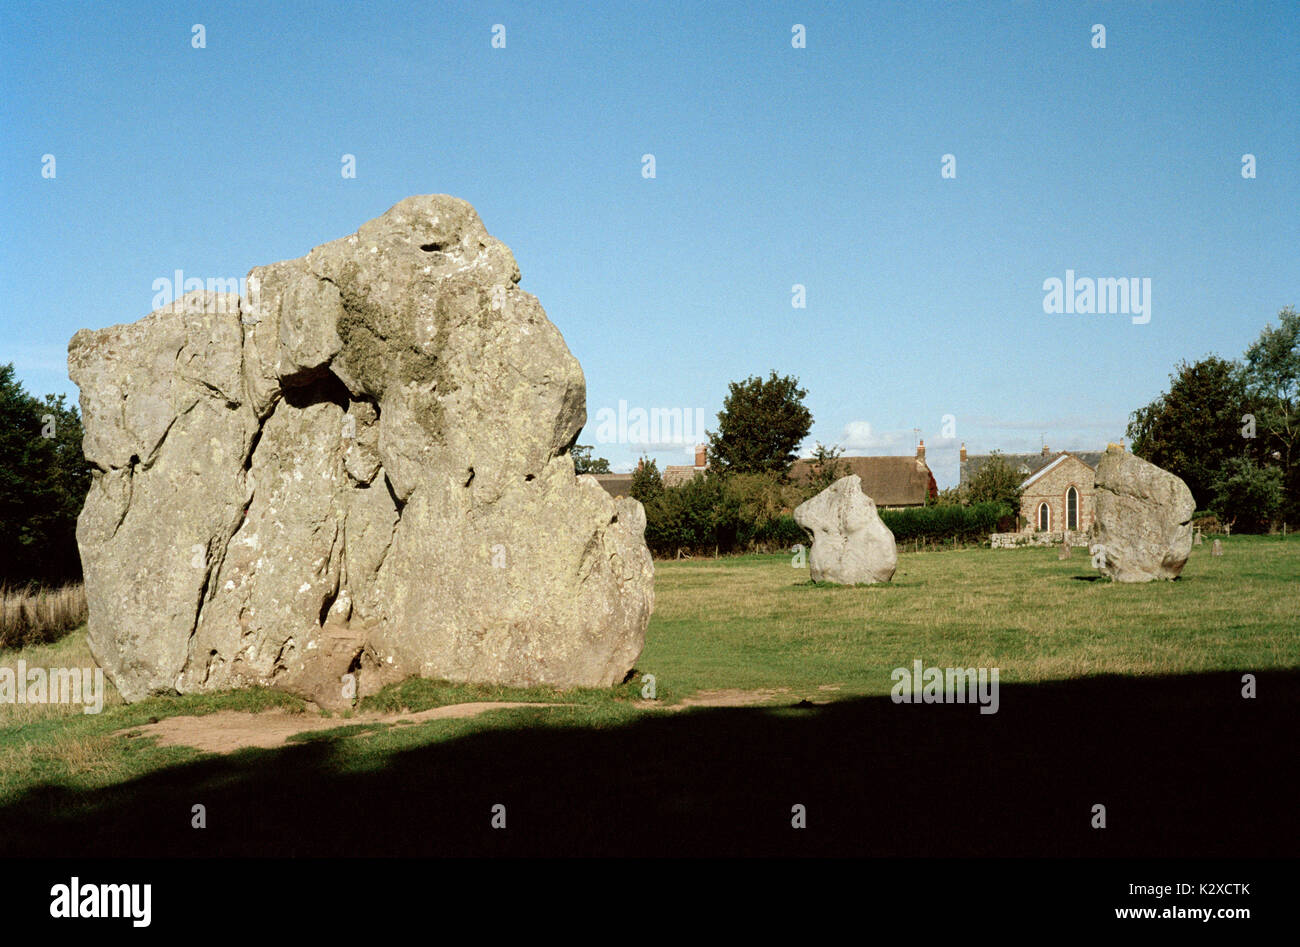 Avebury Stone Circle in Avebury in Wiltshire in England in Great Britain in the United Kingdom UK Europe. Ancient Henge Stones Prehistory Travel - Stock Image